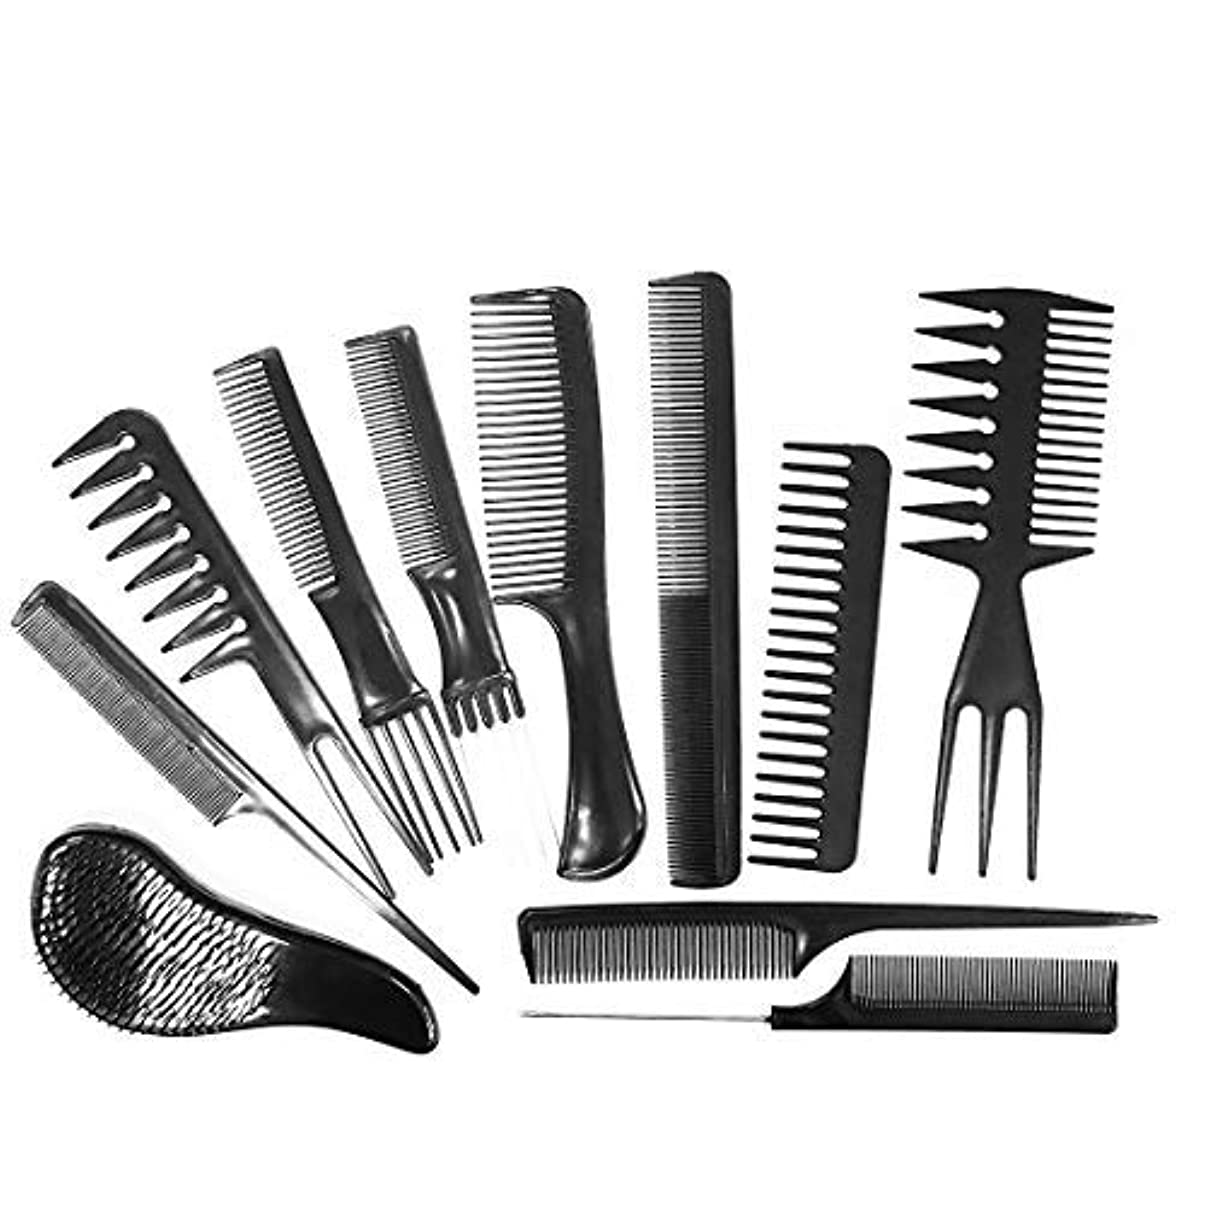 地下自治王族Daimay Professional Hair Styling Comb Set Hair Styling Clips Salon Hair Styling Barbers Comb Set Variety Pack...